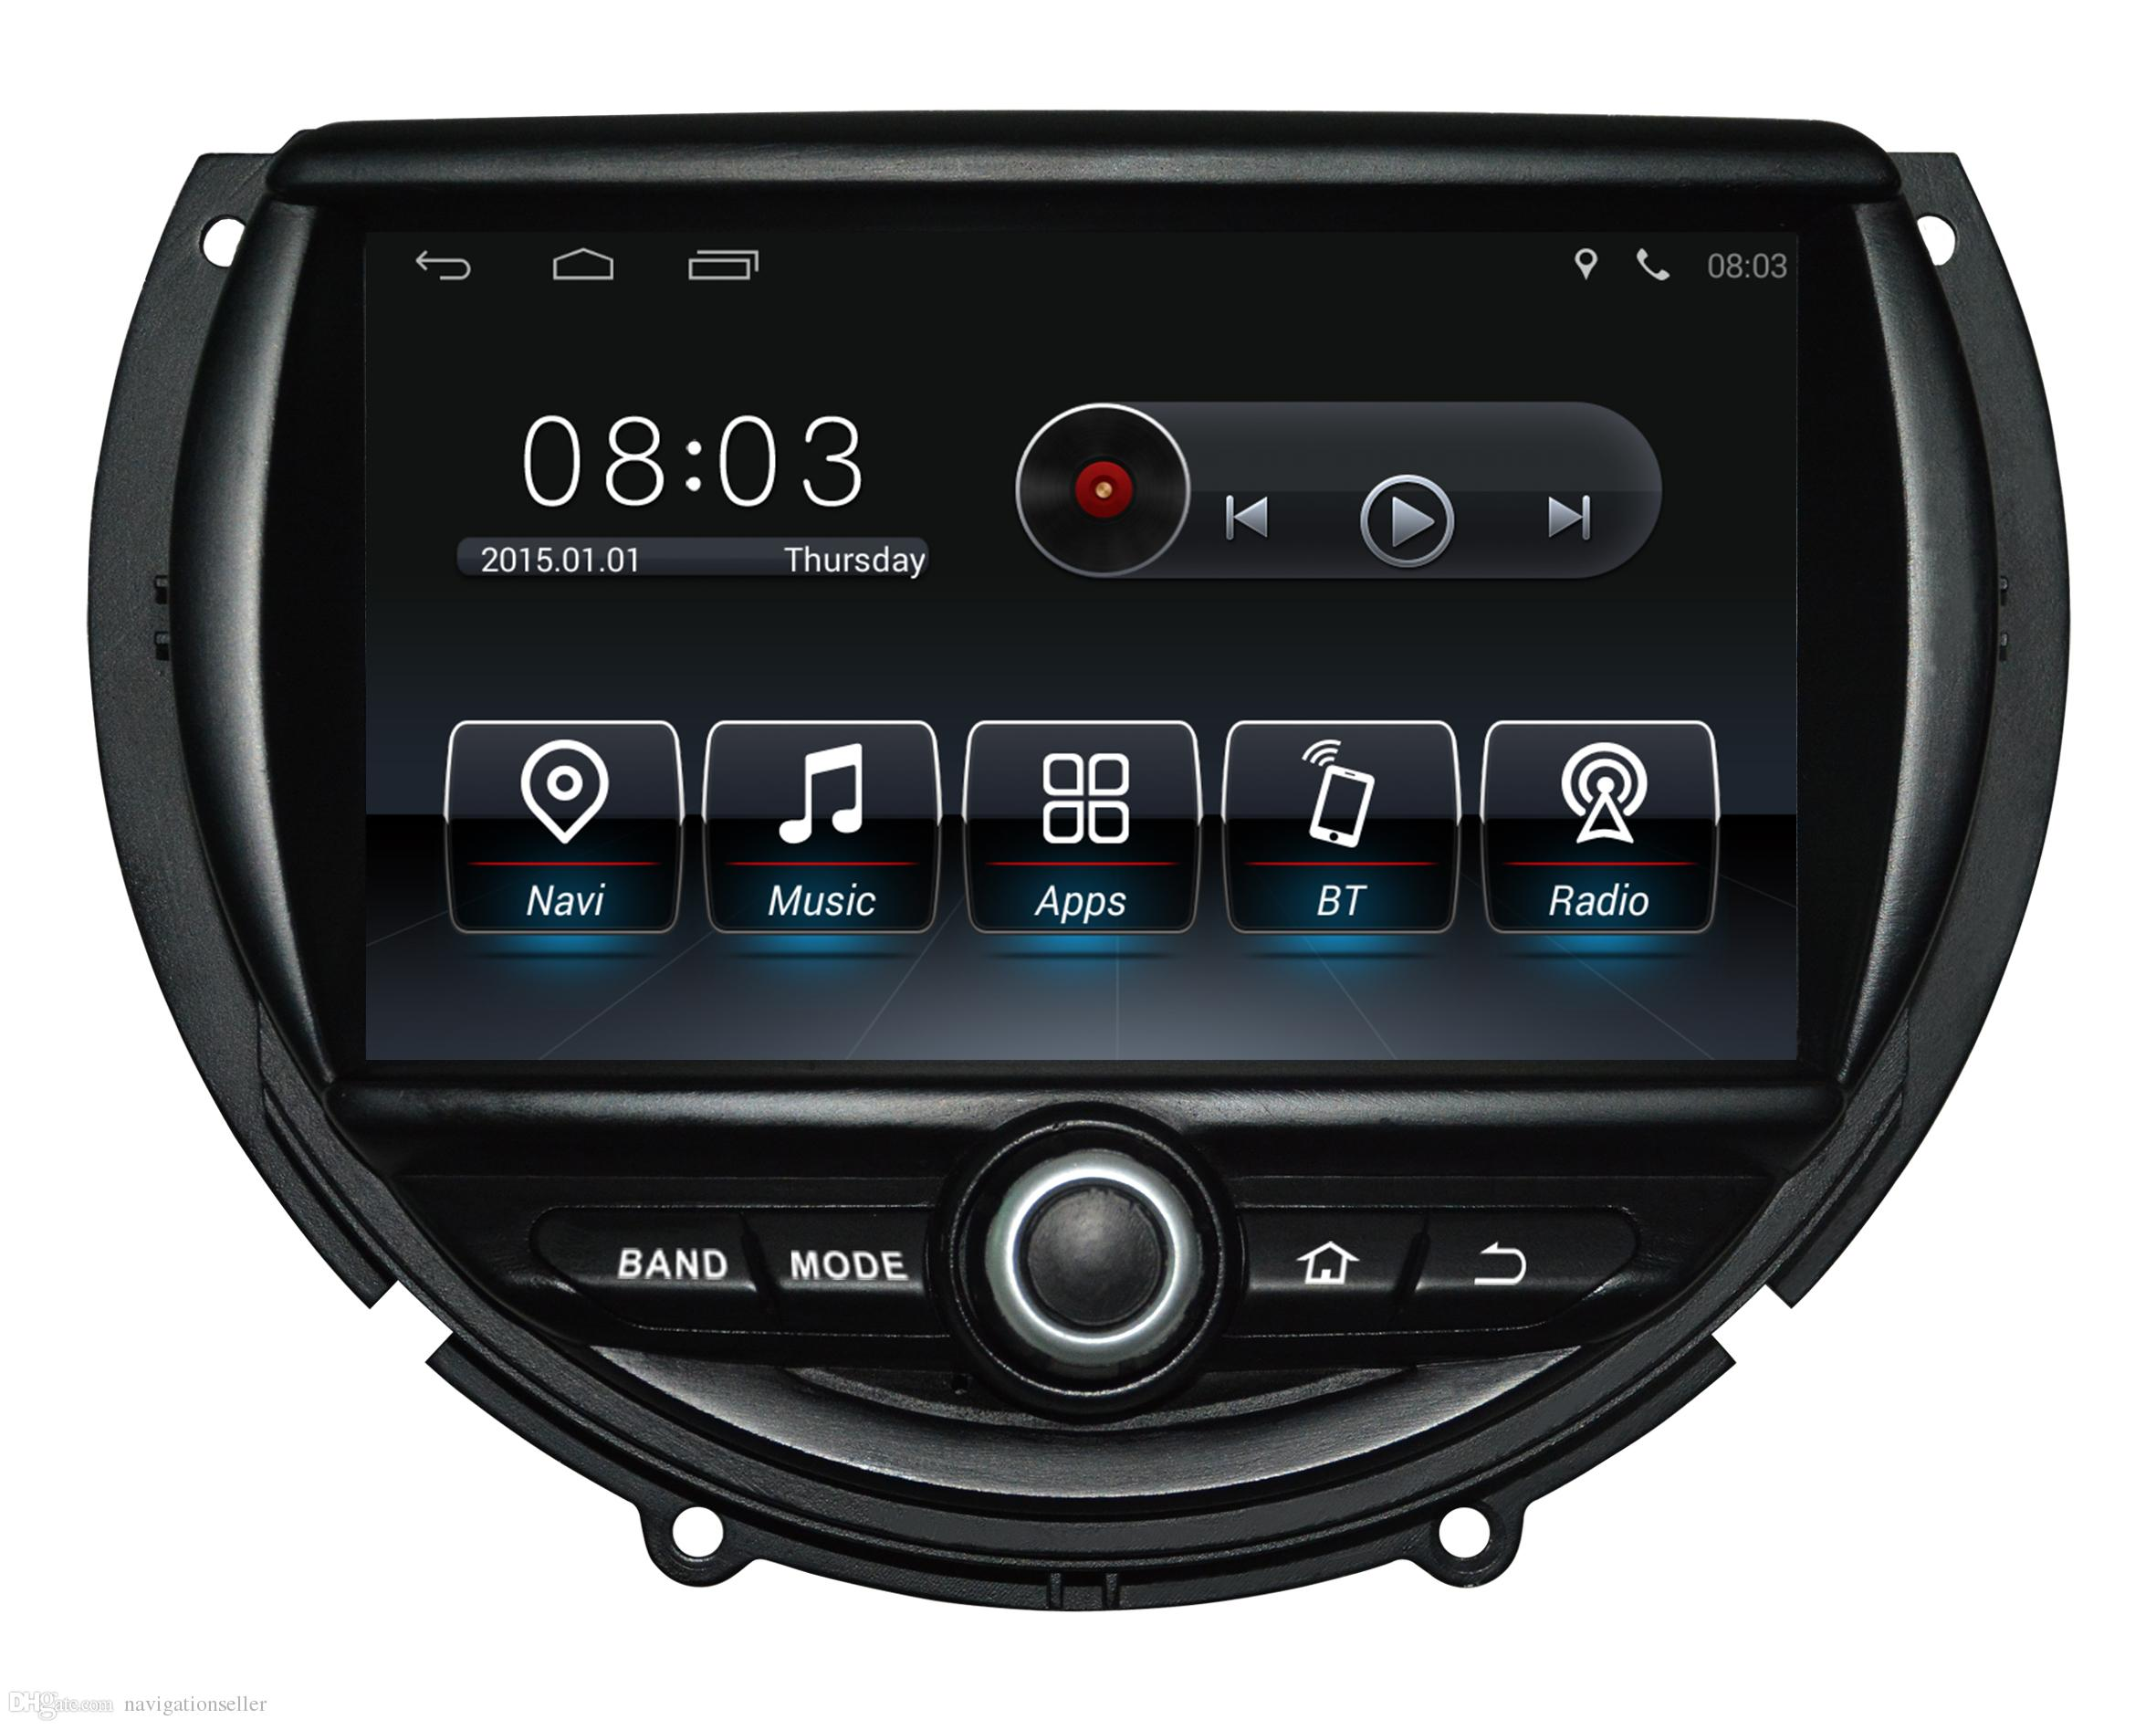 Quad Core 1024 600 Hd Screen Android 7 1 Car Dvd Gps Navigation For